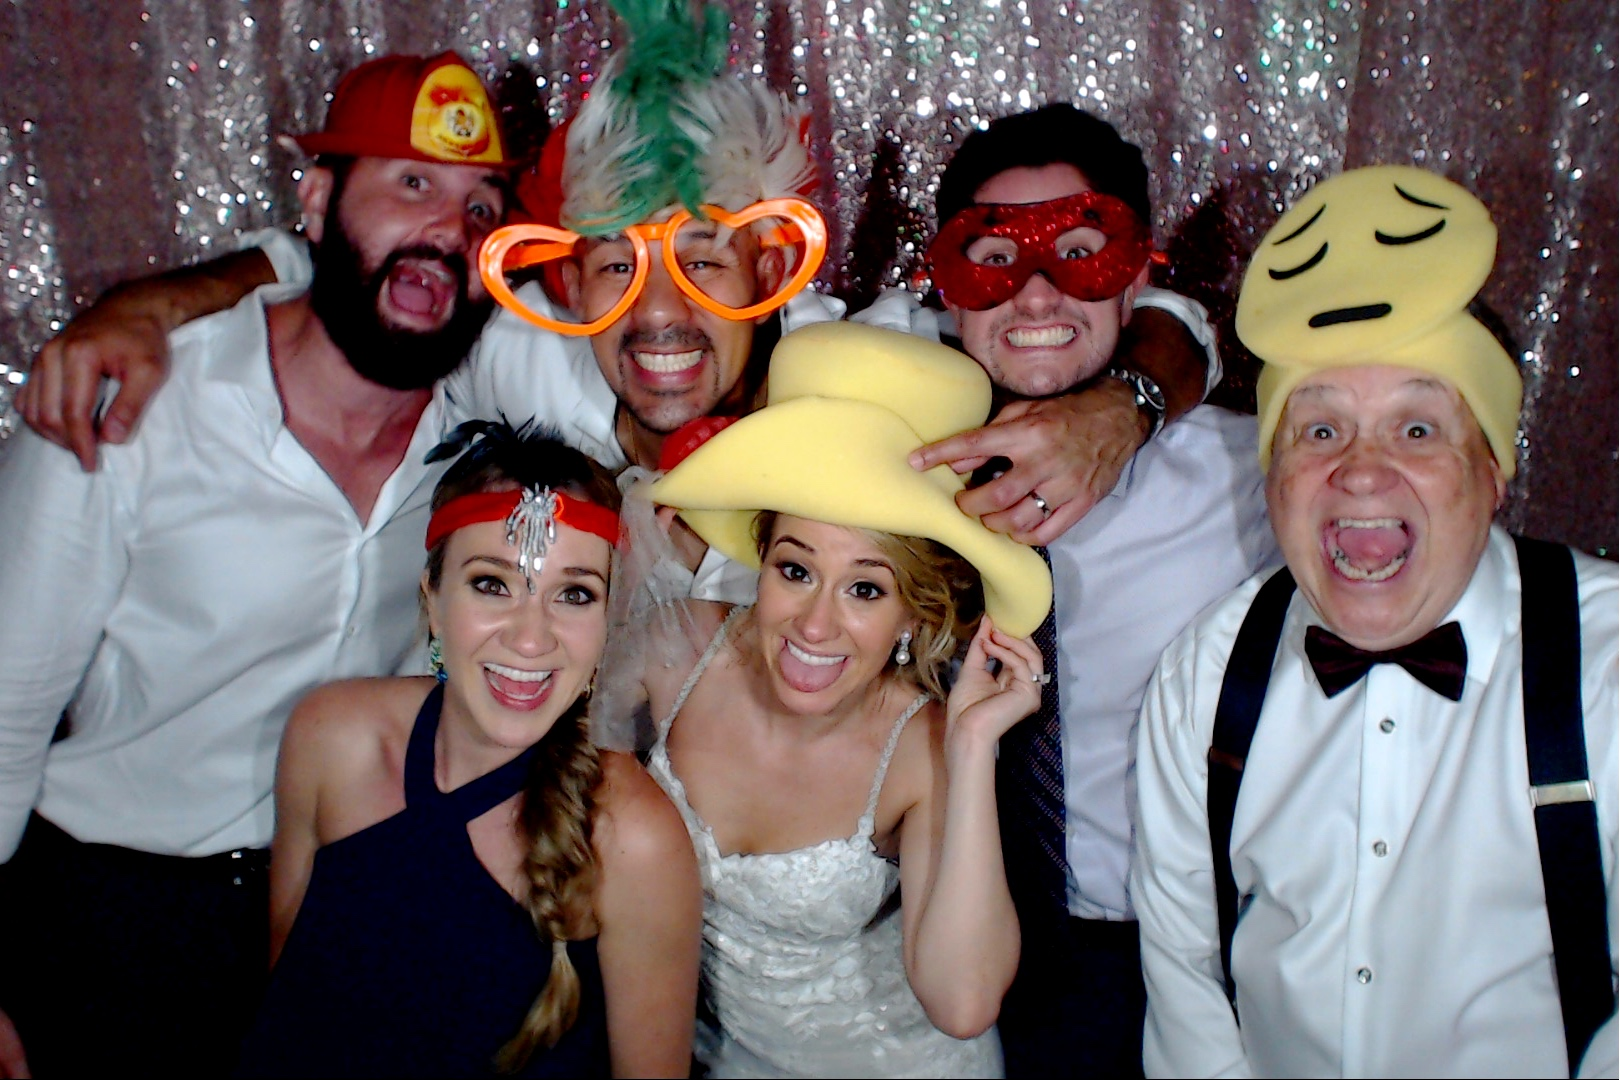 XcaretweddingsPhotoBooth00173